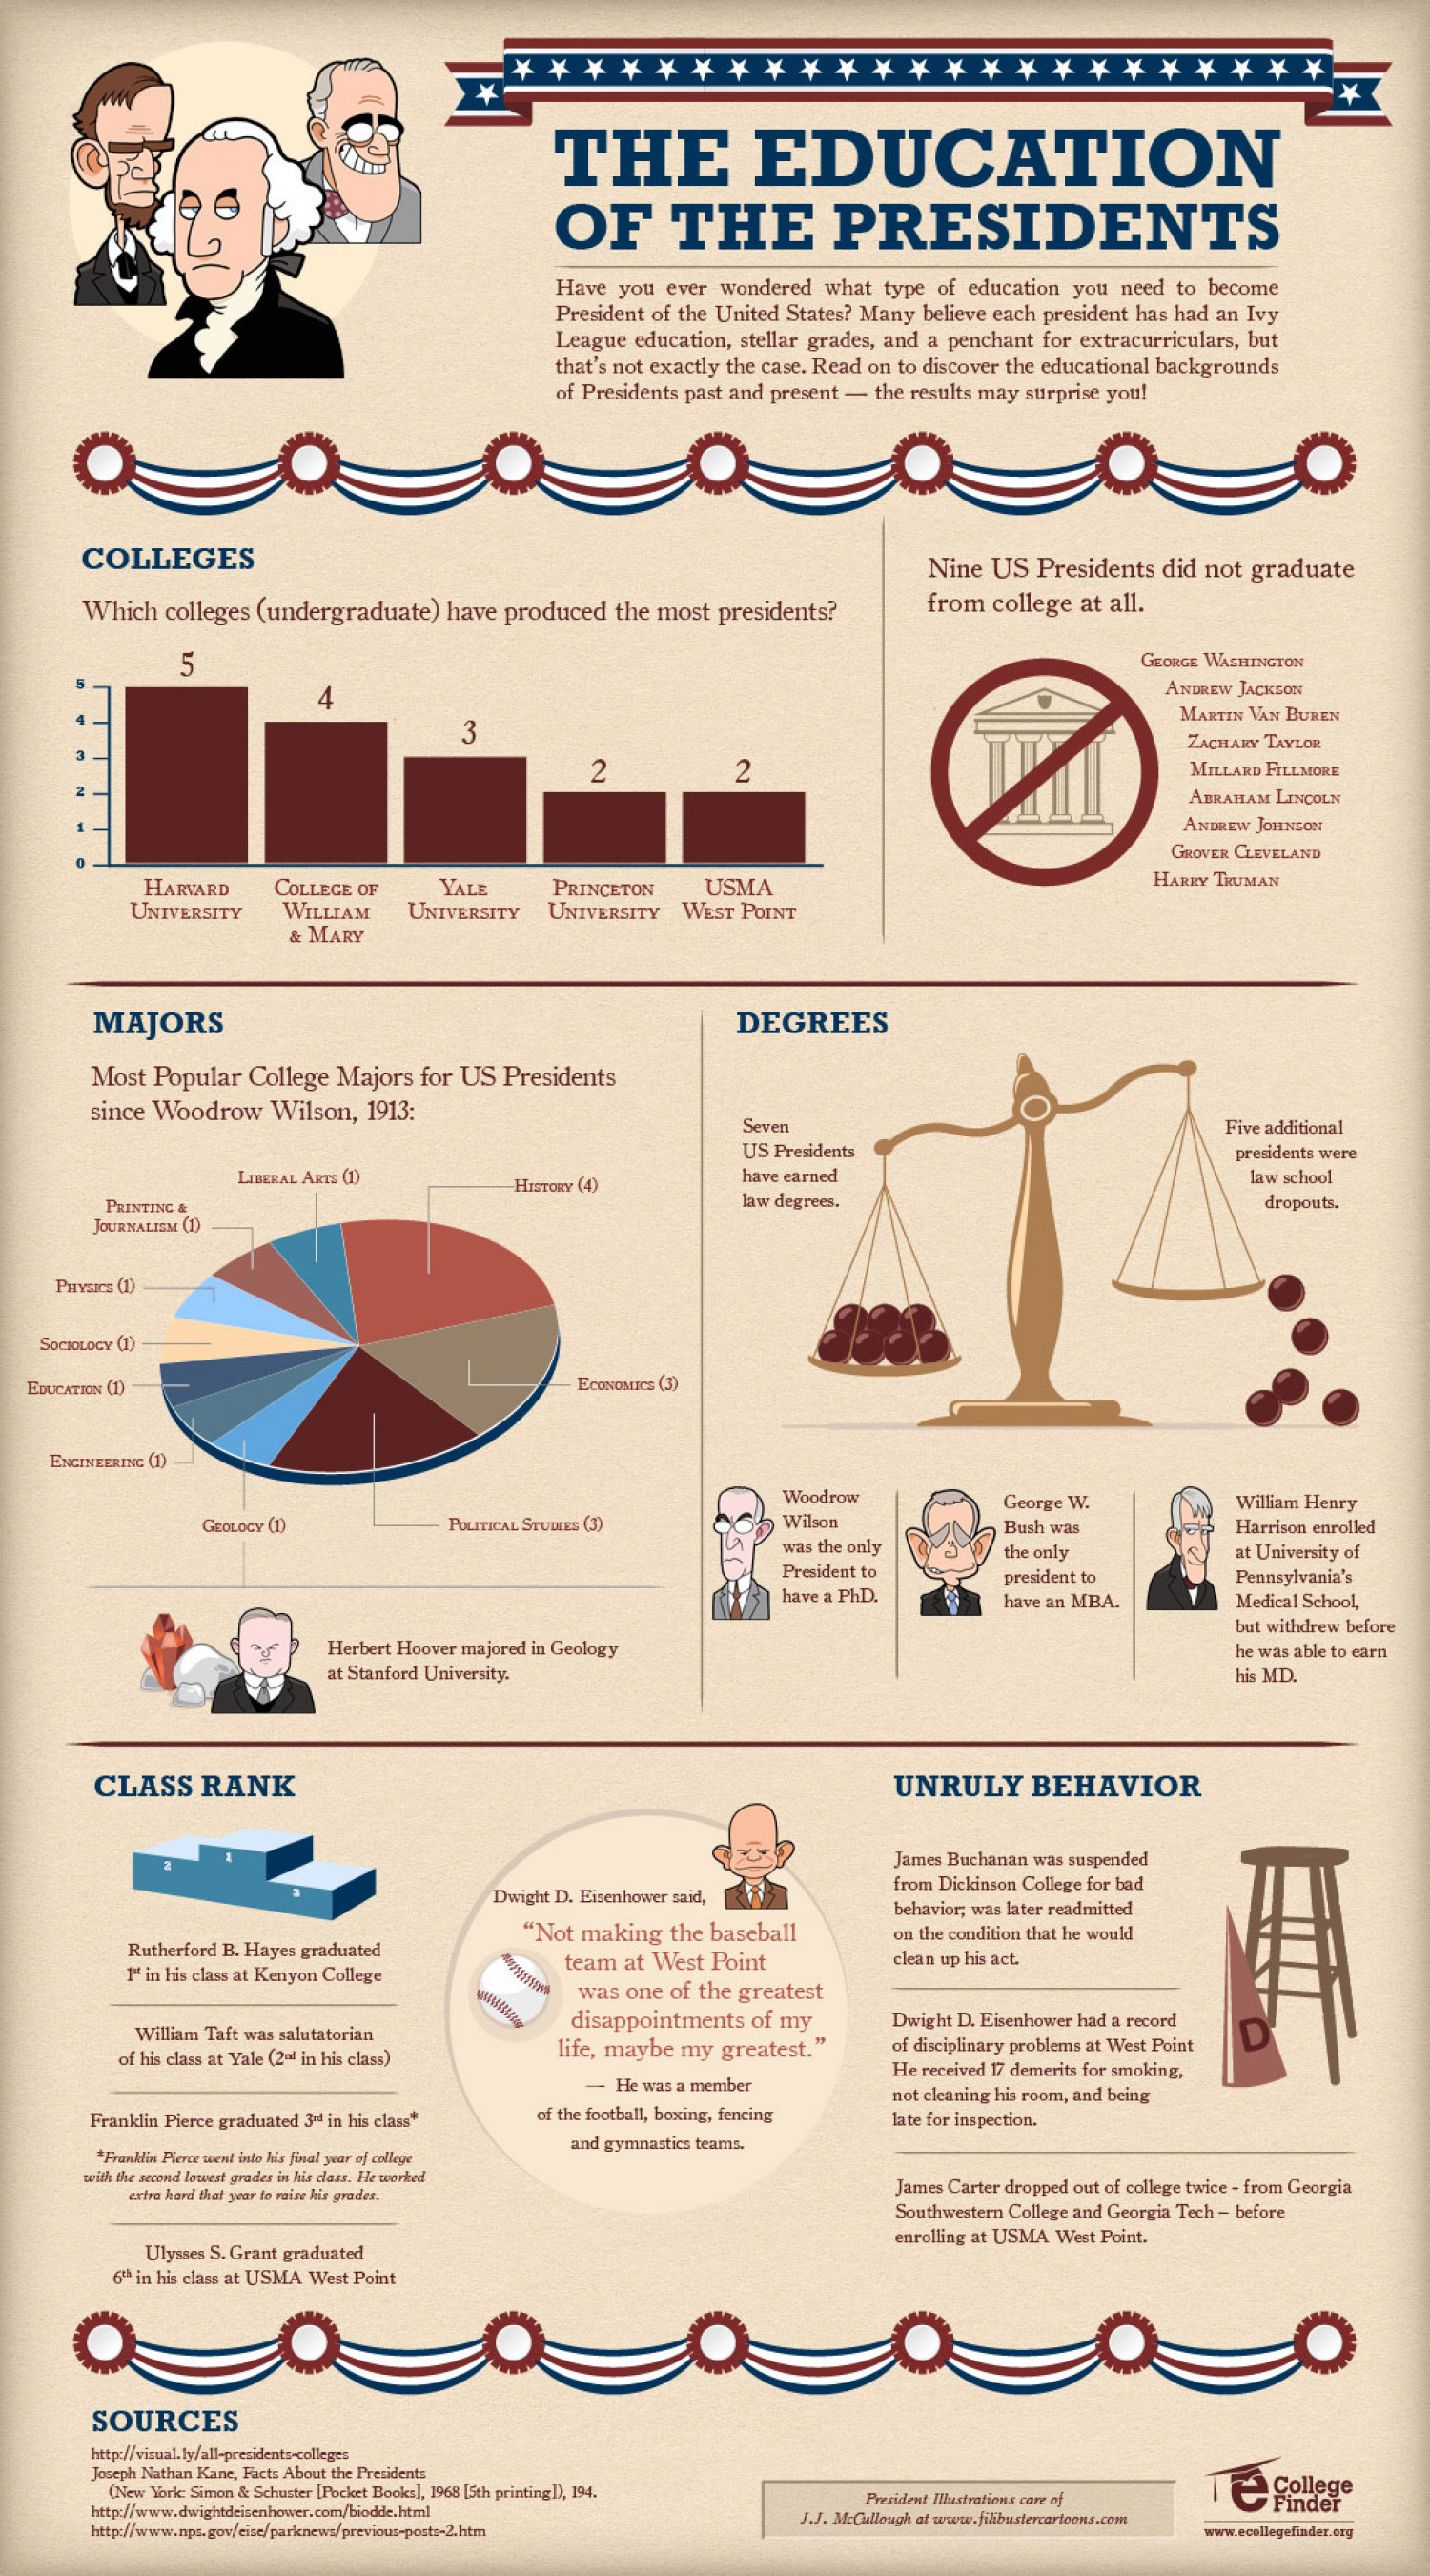 The Education of the Presidents Infographic